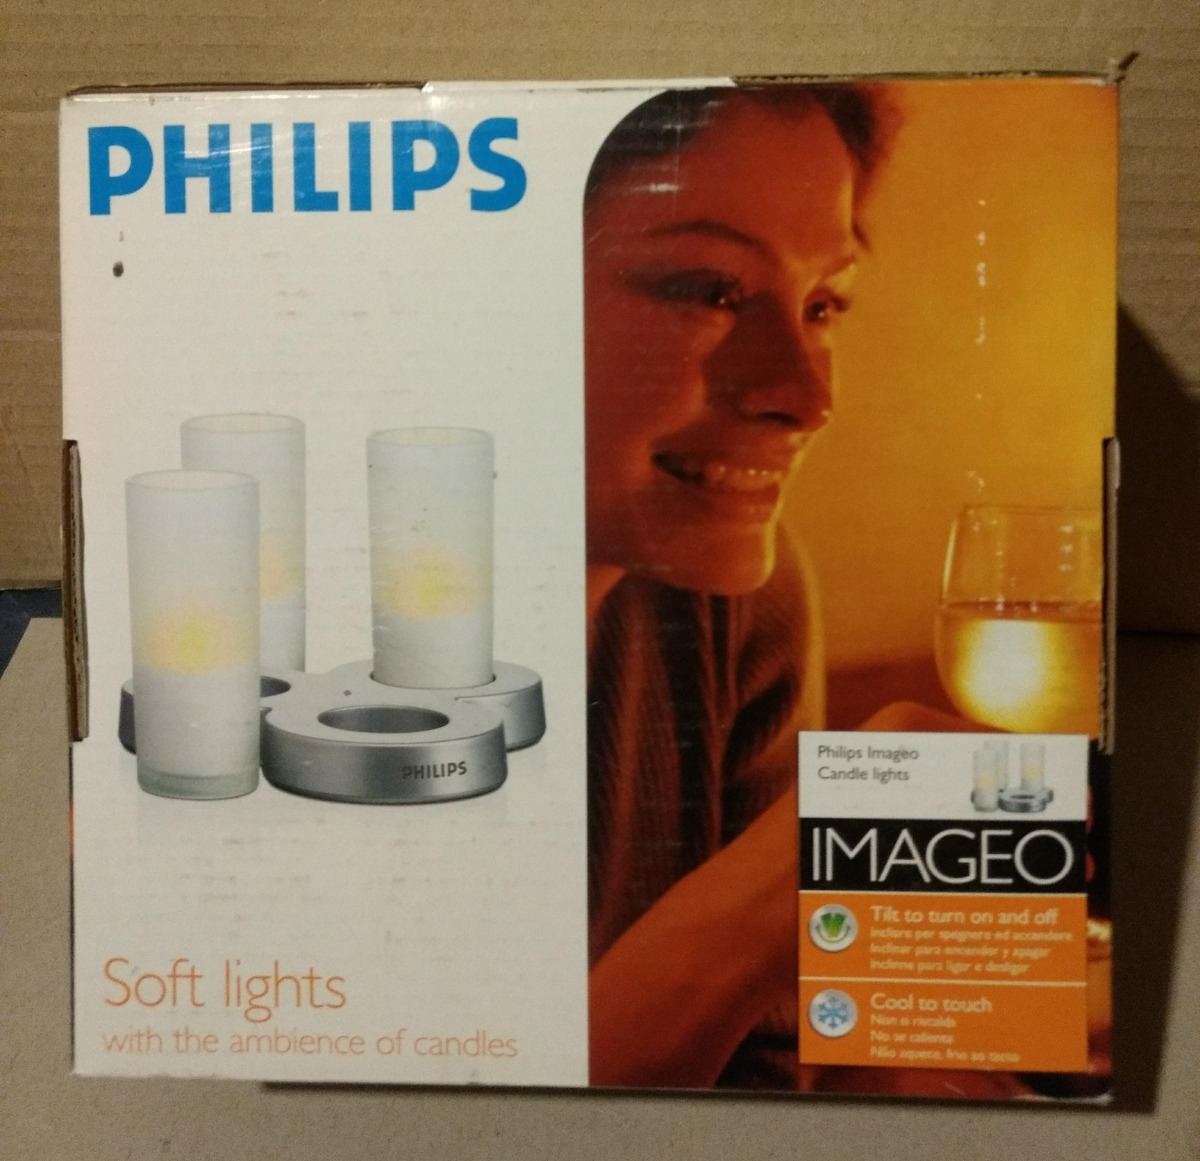 Philips Imageo Philips Imageo Luces Suaves Lamparas De Vela